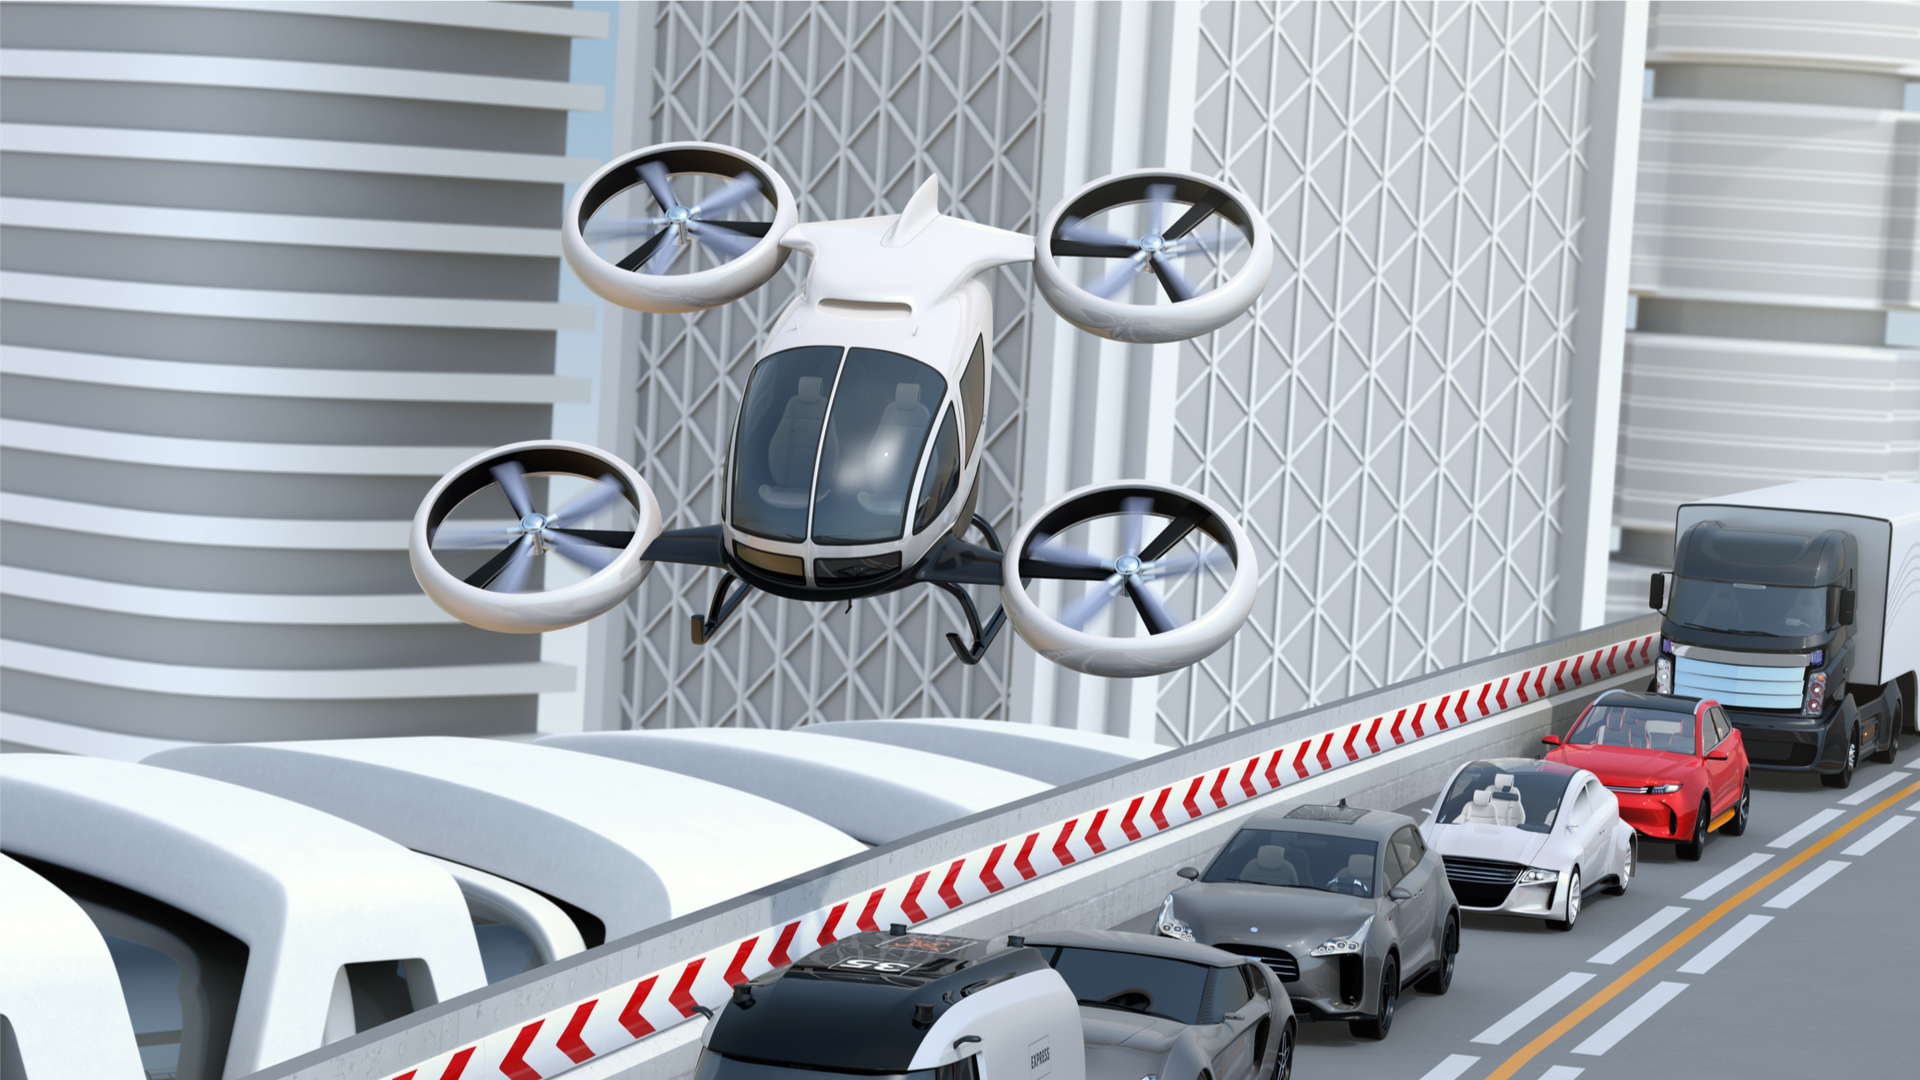 Hyundai recruits boss of Urban Air Mobility